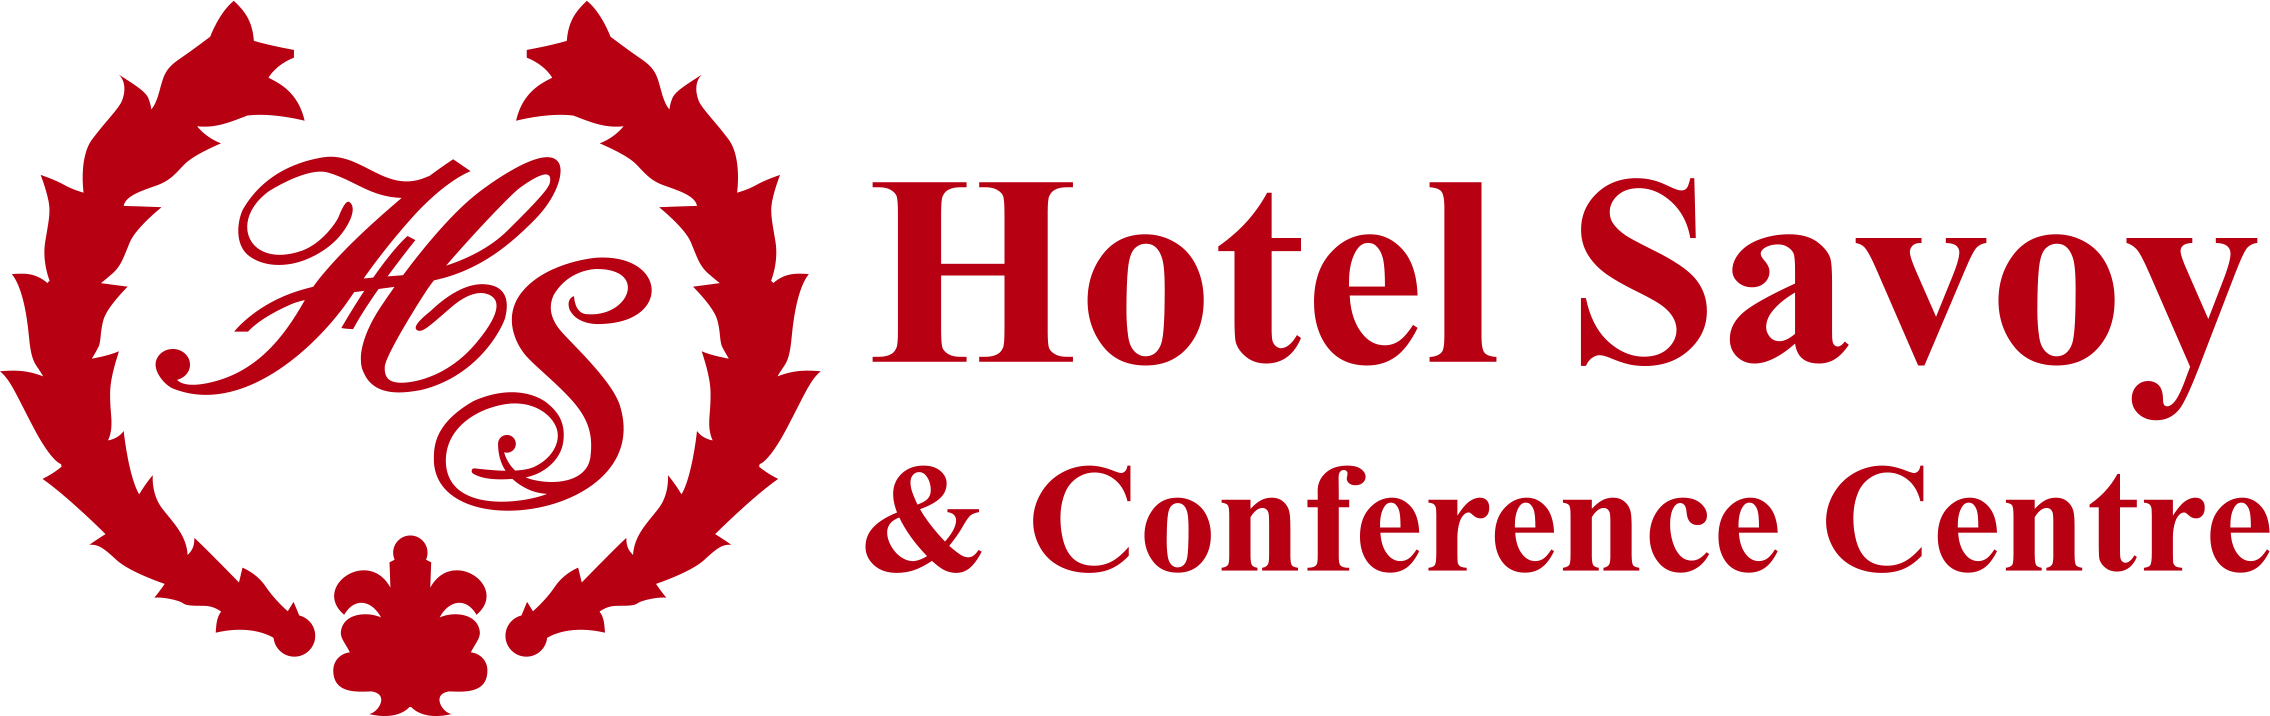 Hotel Savoy & Conference Centre